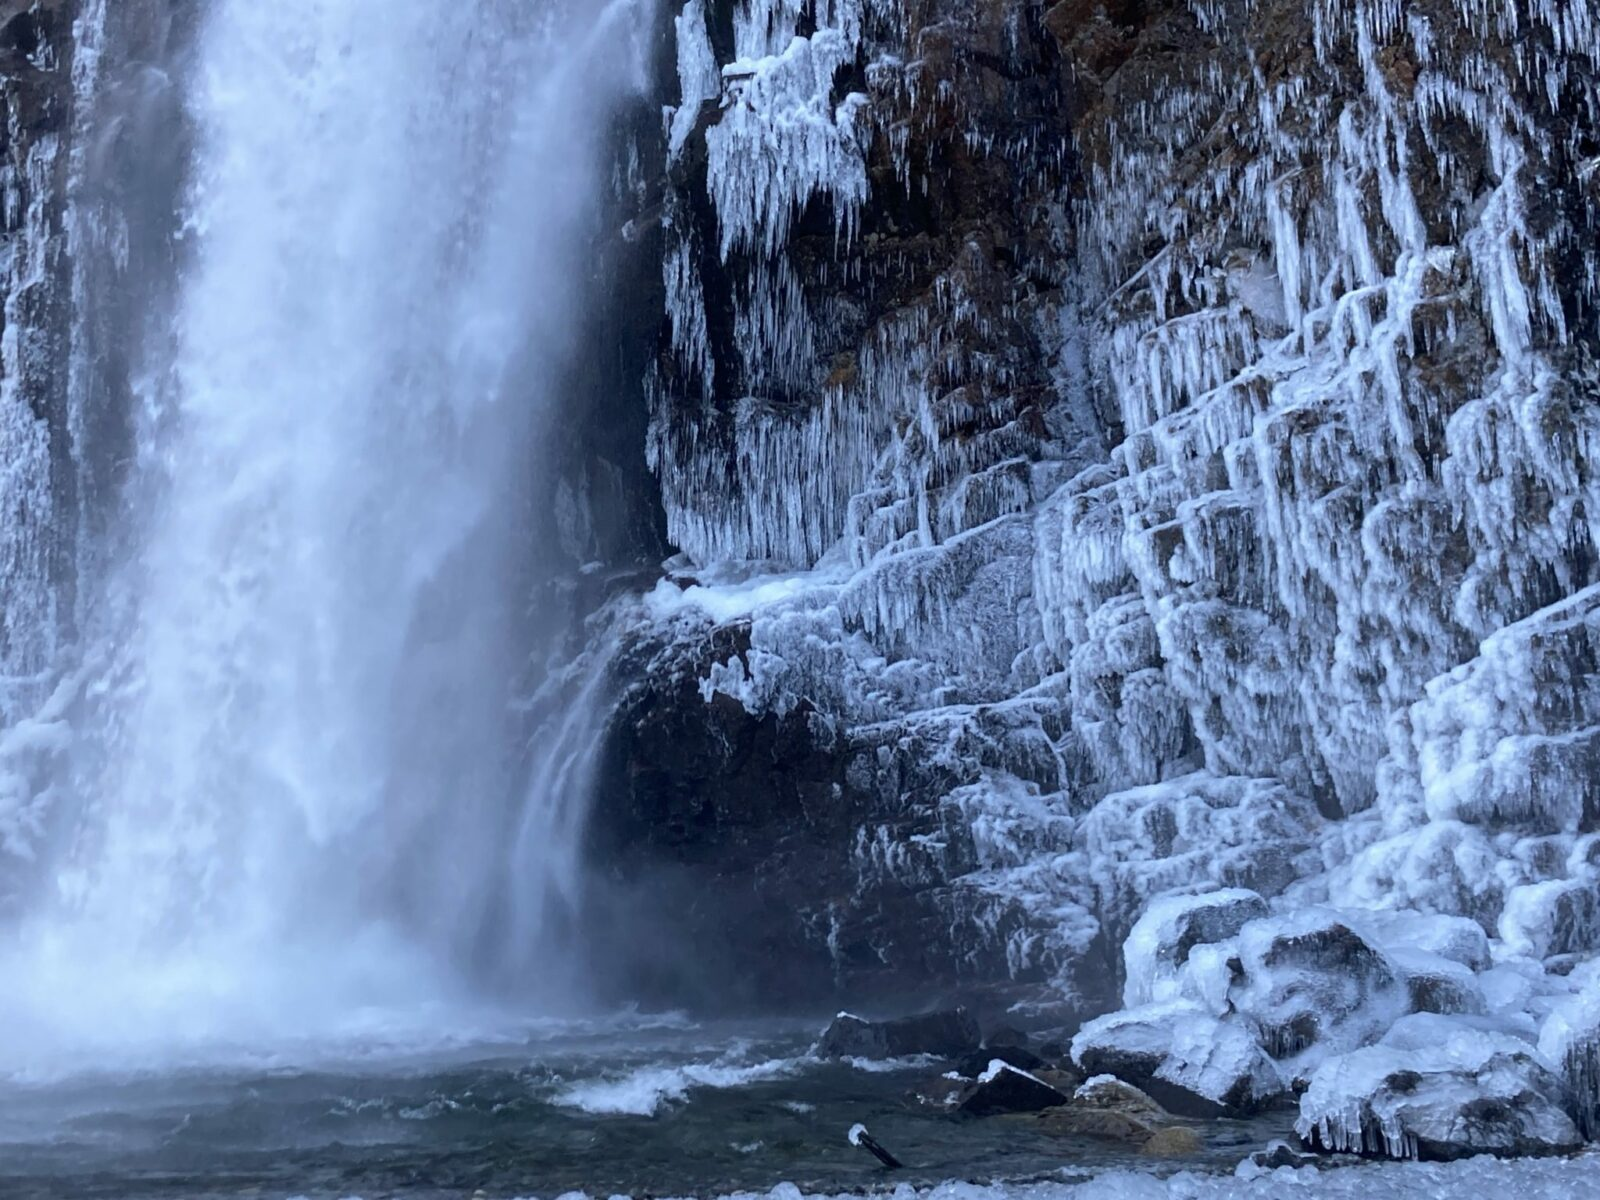 Franklin Falls in winter splashing into a pool at the base of the falls. The rocks are covered in ice and icicles around the waterfall base